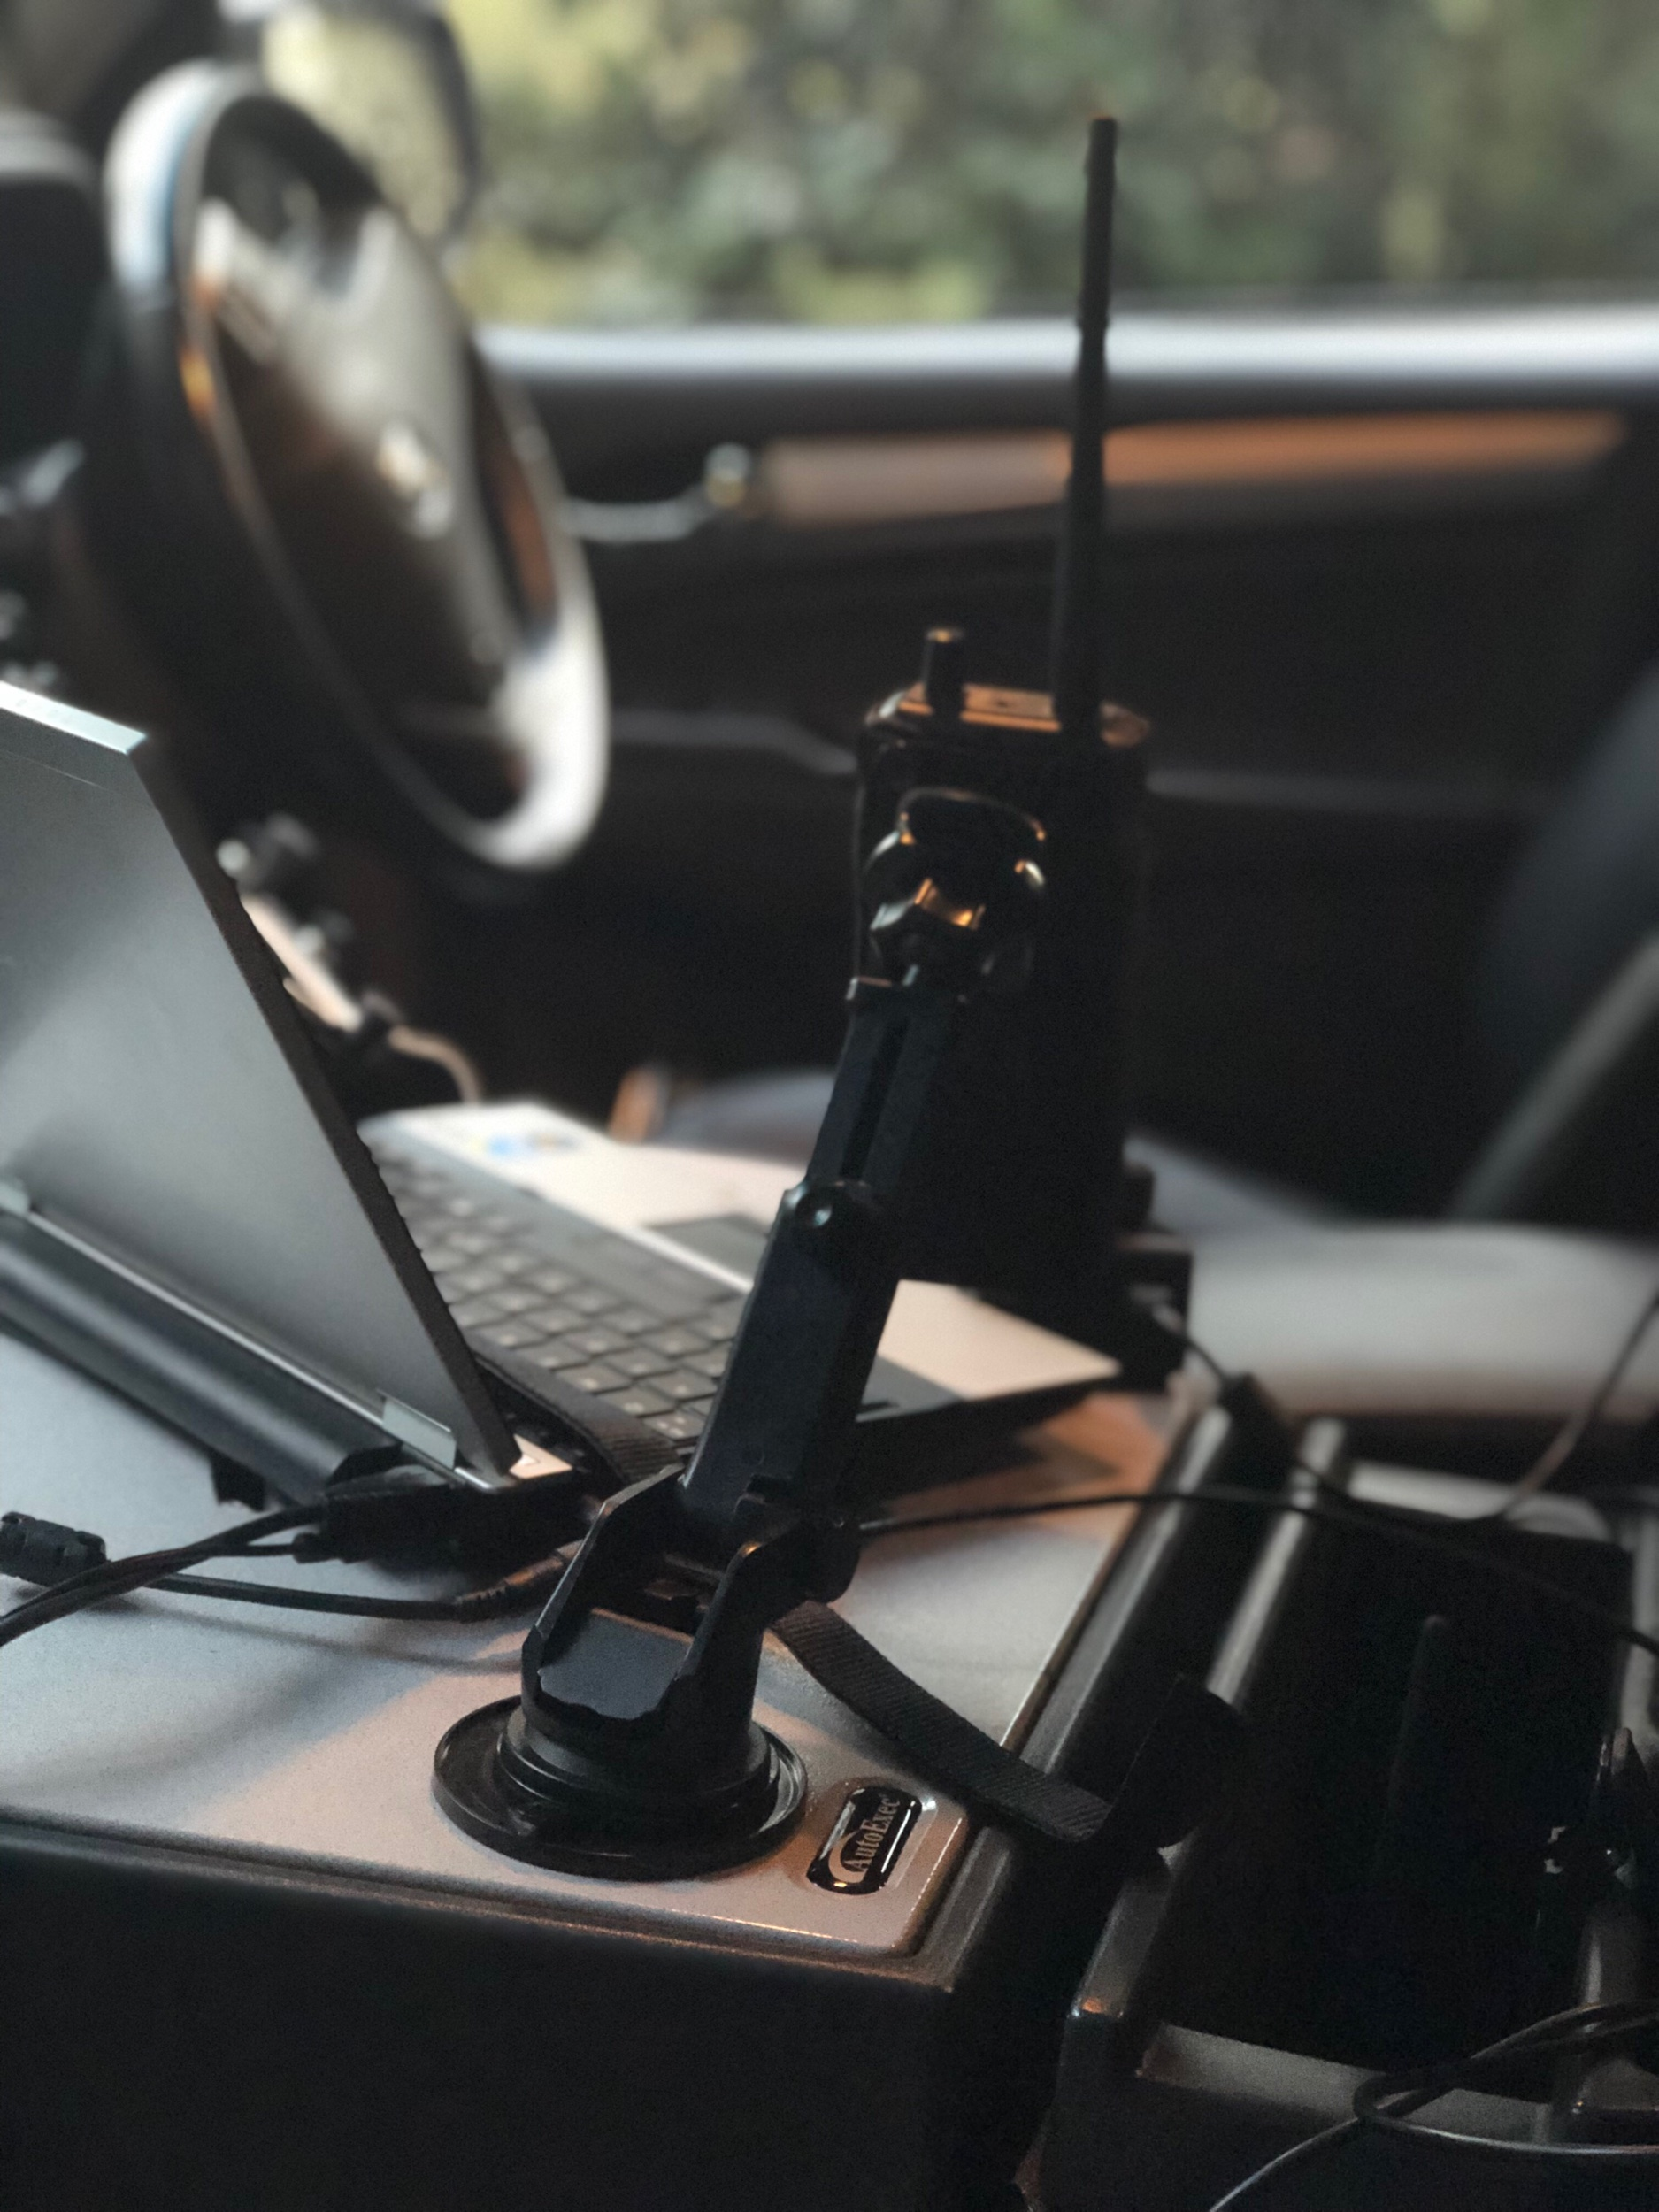 Using a suction mount to hold a scanner or hand held radio